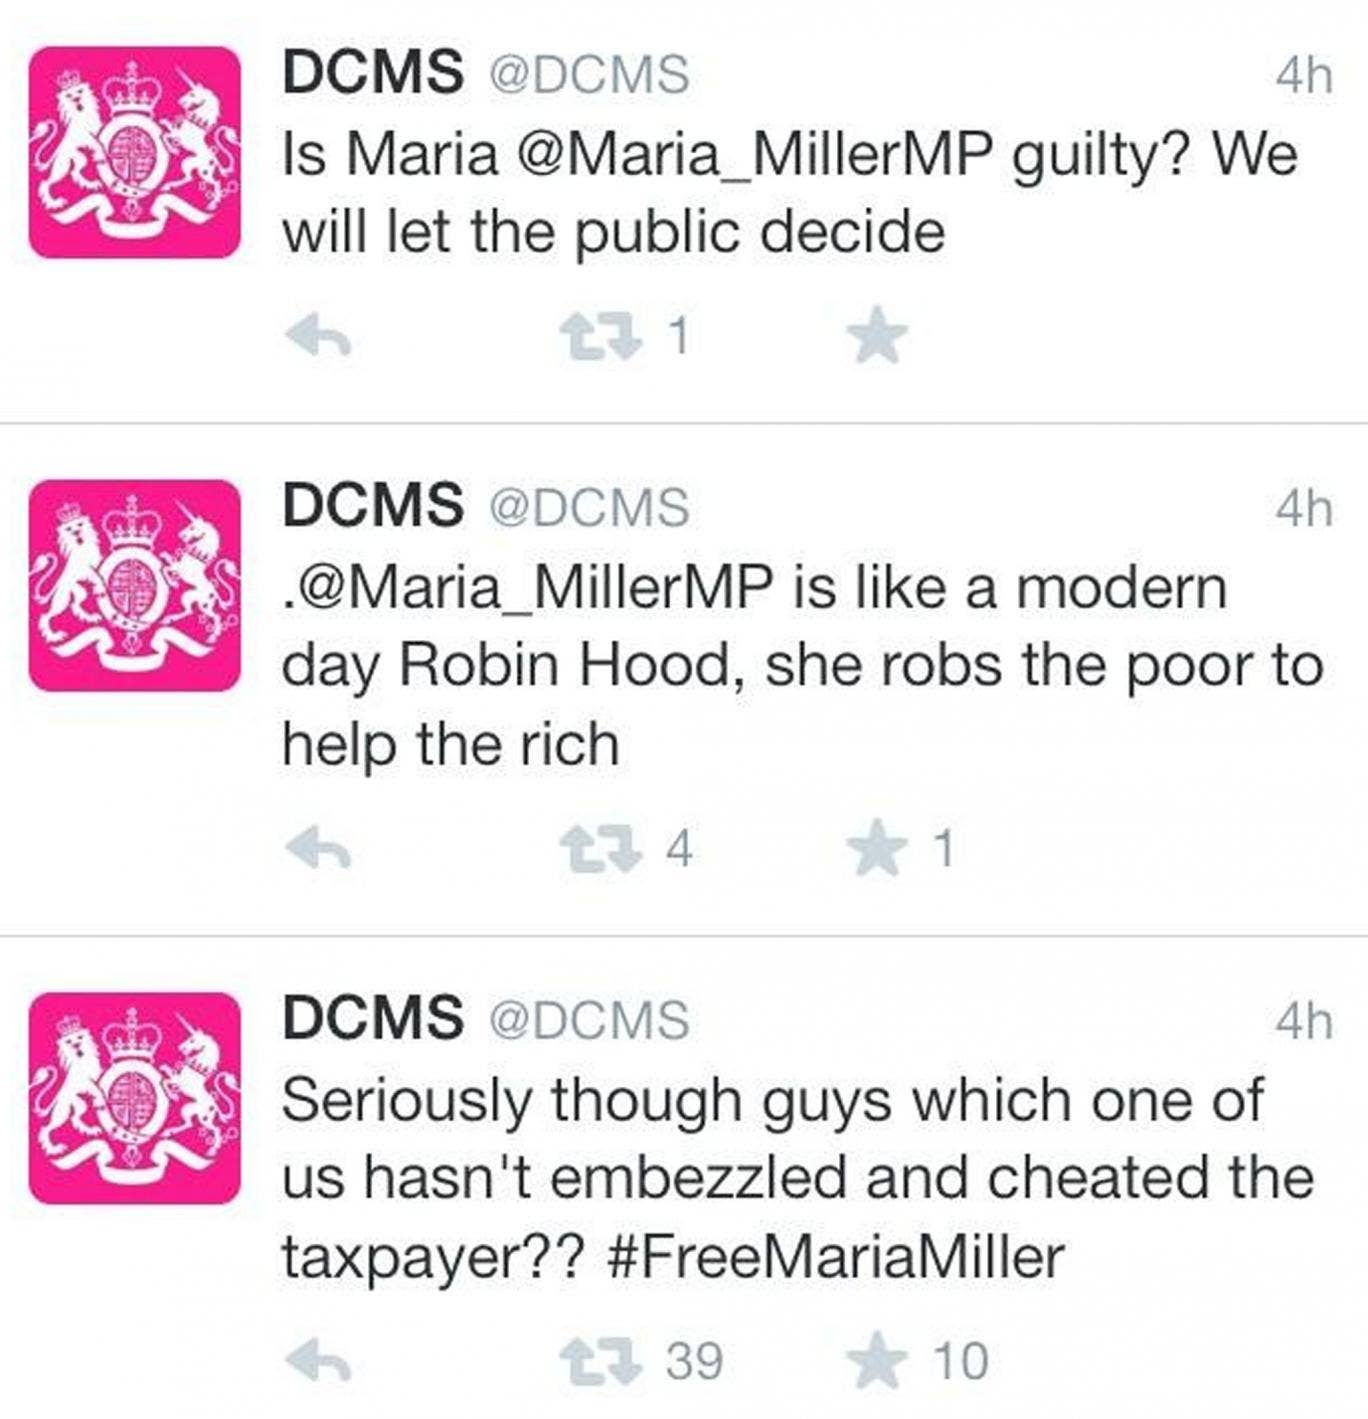 The series of tweets posted from the DCMS account on Saturday evening